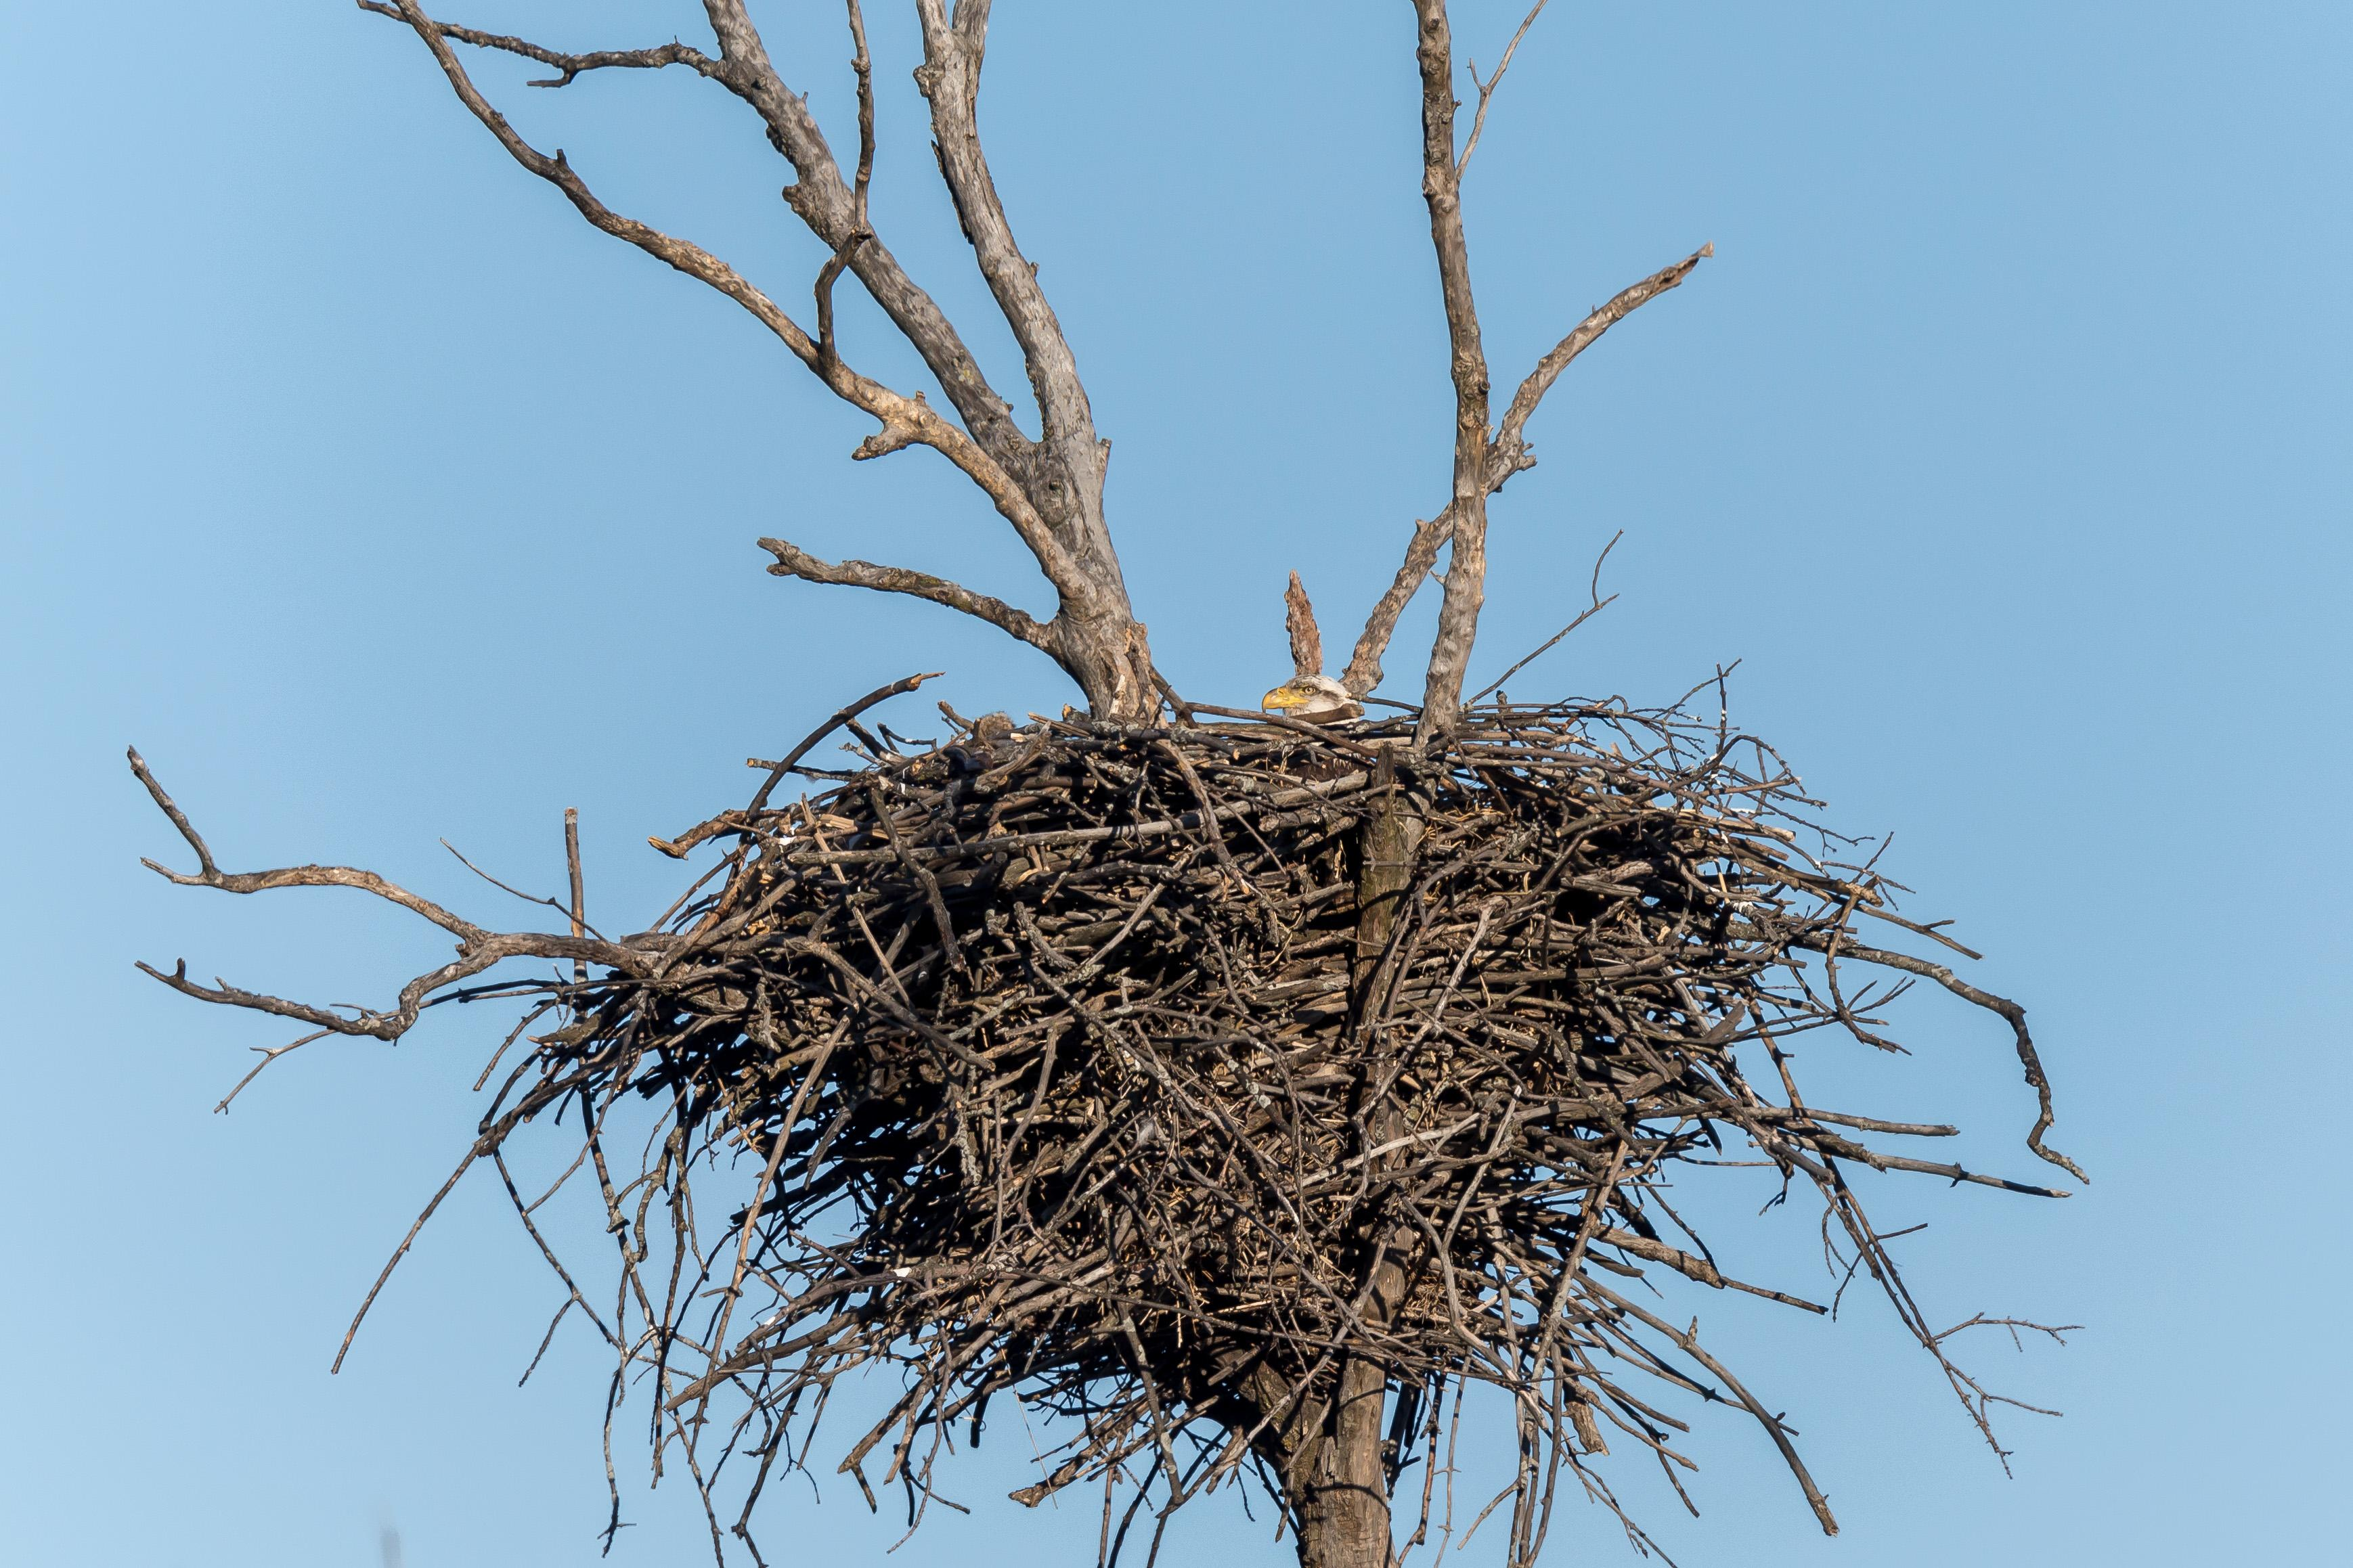 A bald eagle nest in Busse Woods. The female is thought to be sitting on at least one egg.  Her head is just barely visible as she keeps a close eye on visitors. (Photo credit: Josh Feeney)